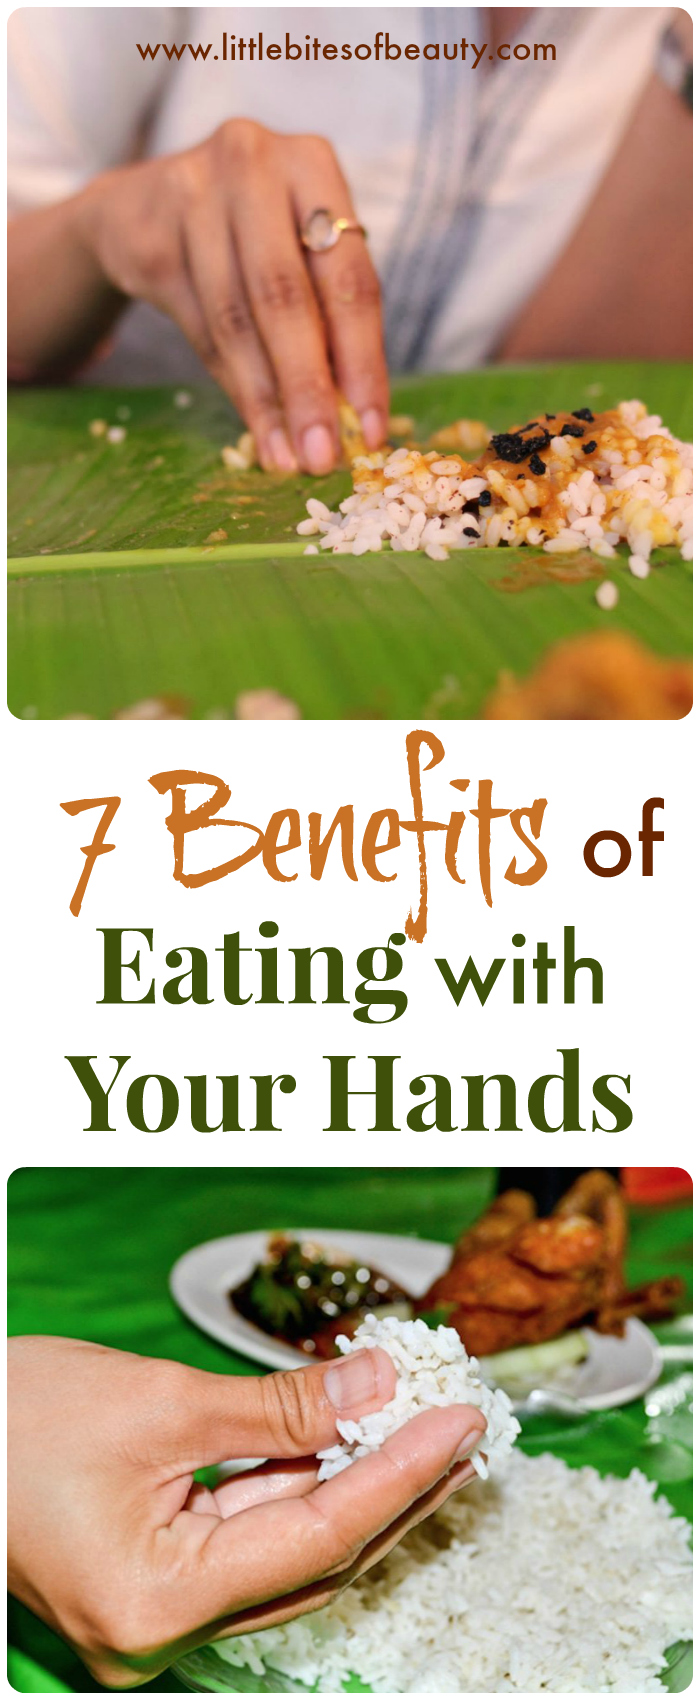 The 7 Benefits of Eating with Your Hands